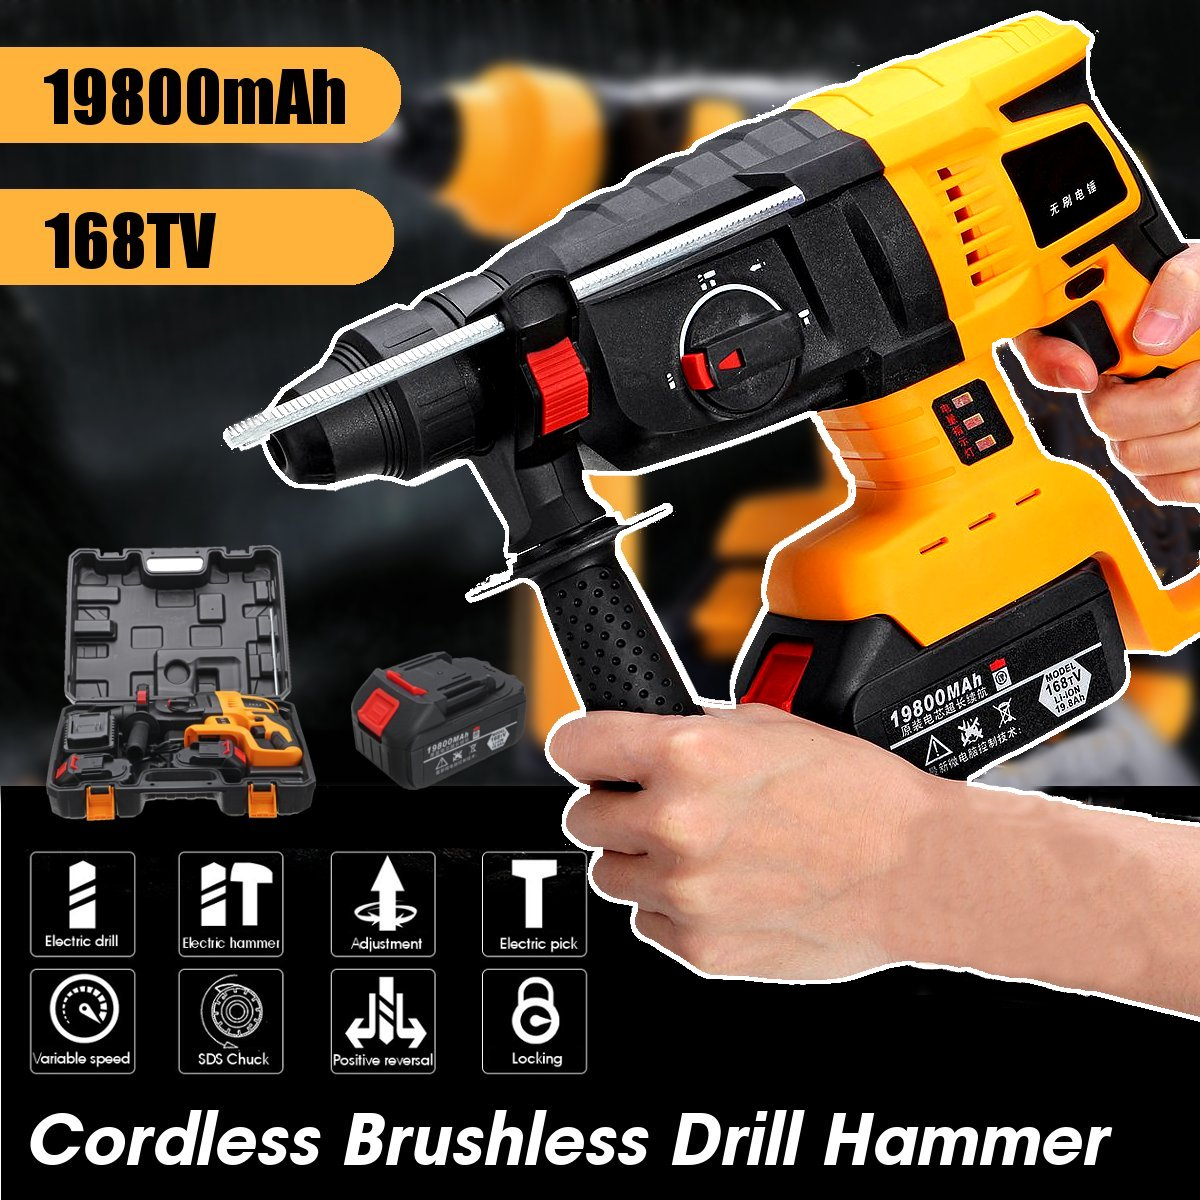 68V industrial Multifunctional Cordless Rotary Hammer Rechargeable Electric Demolition Hammer Impact Drill With 1/2 Battery